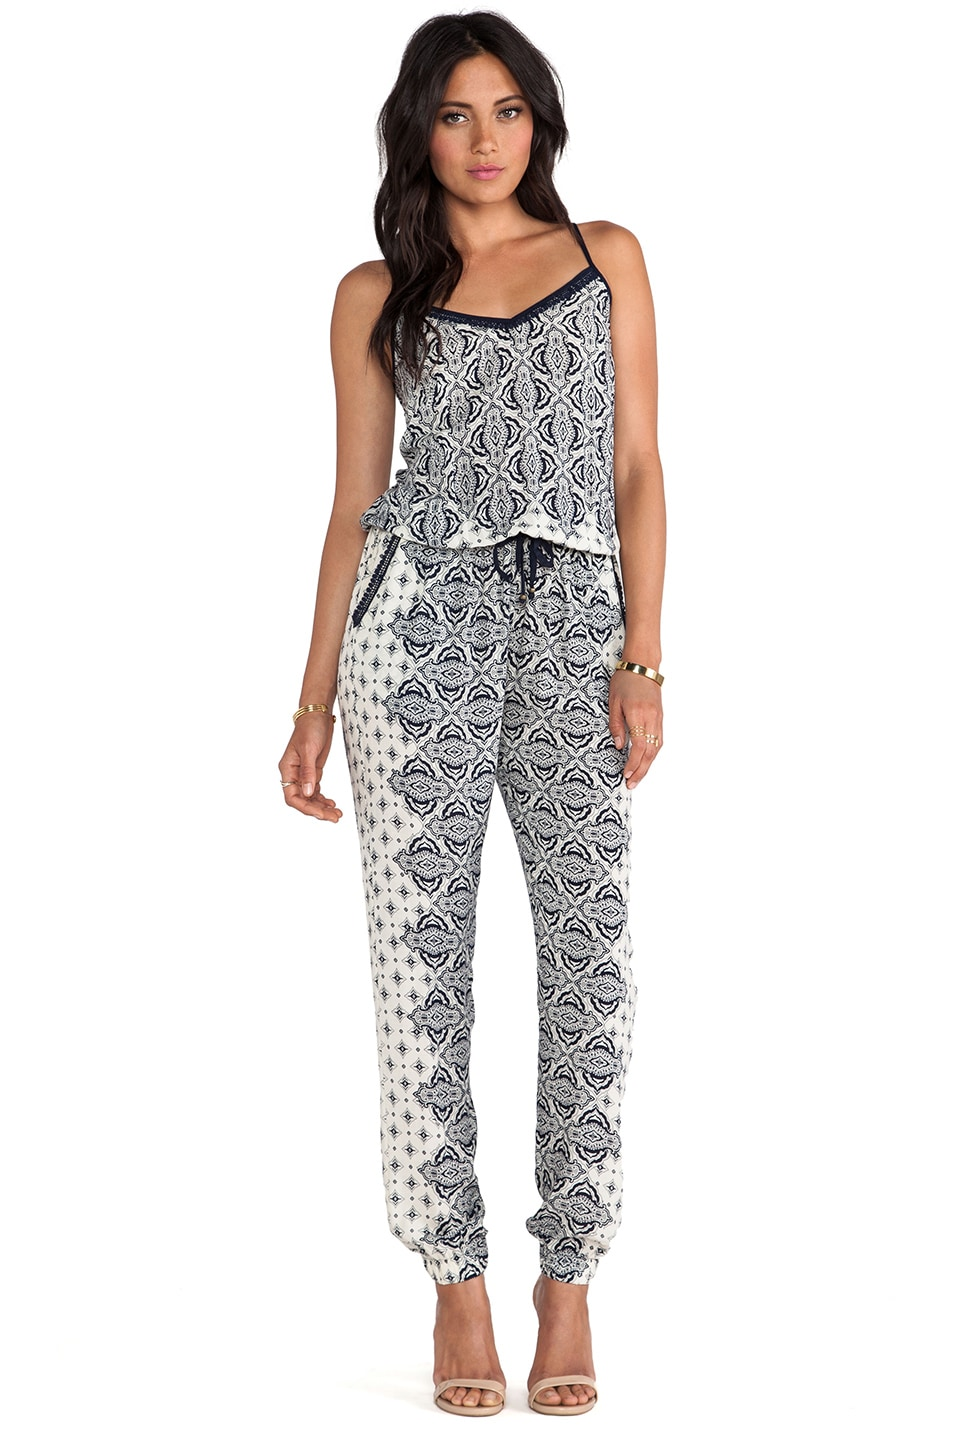 Gypsy 05 Casablanca Pegleg Jumpsuit in Blue